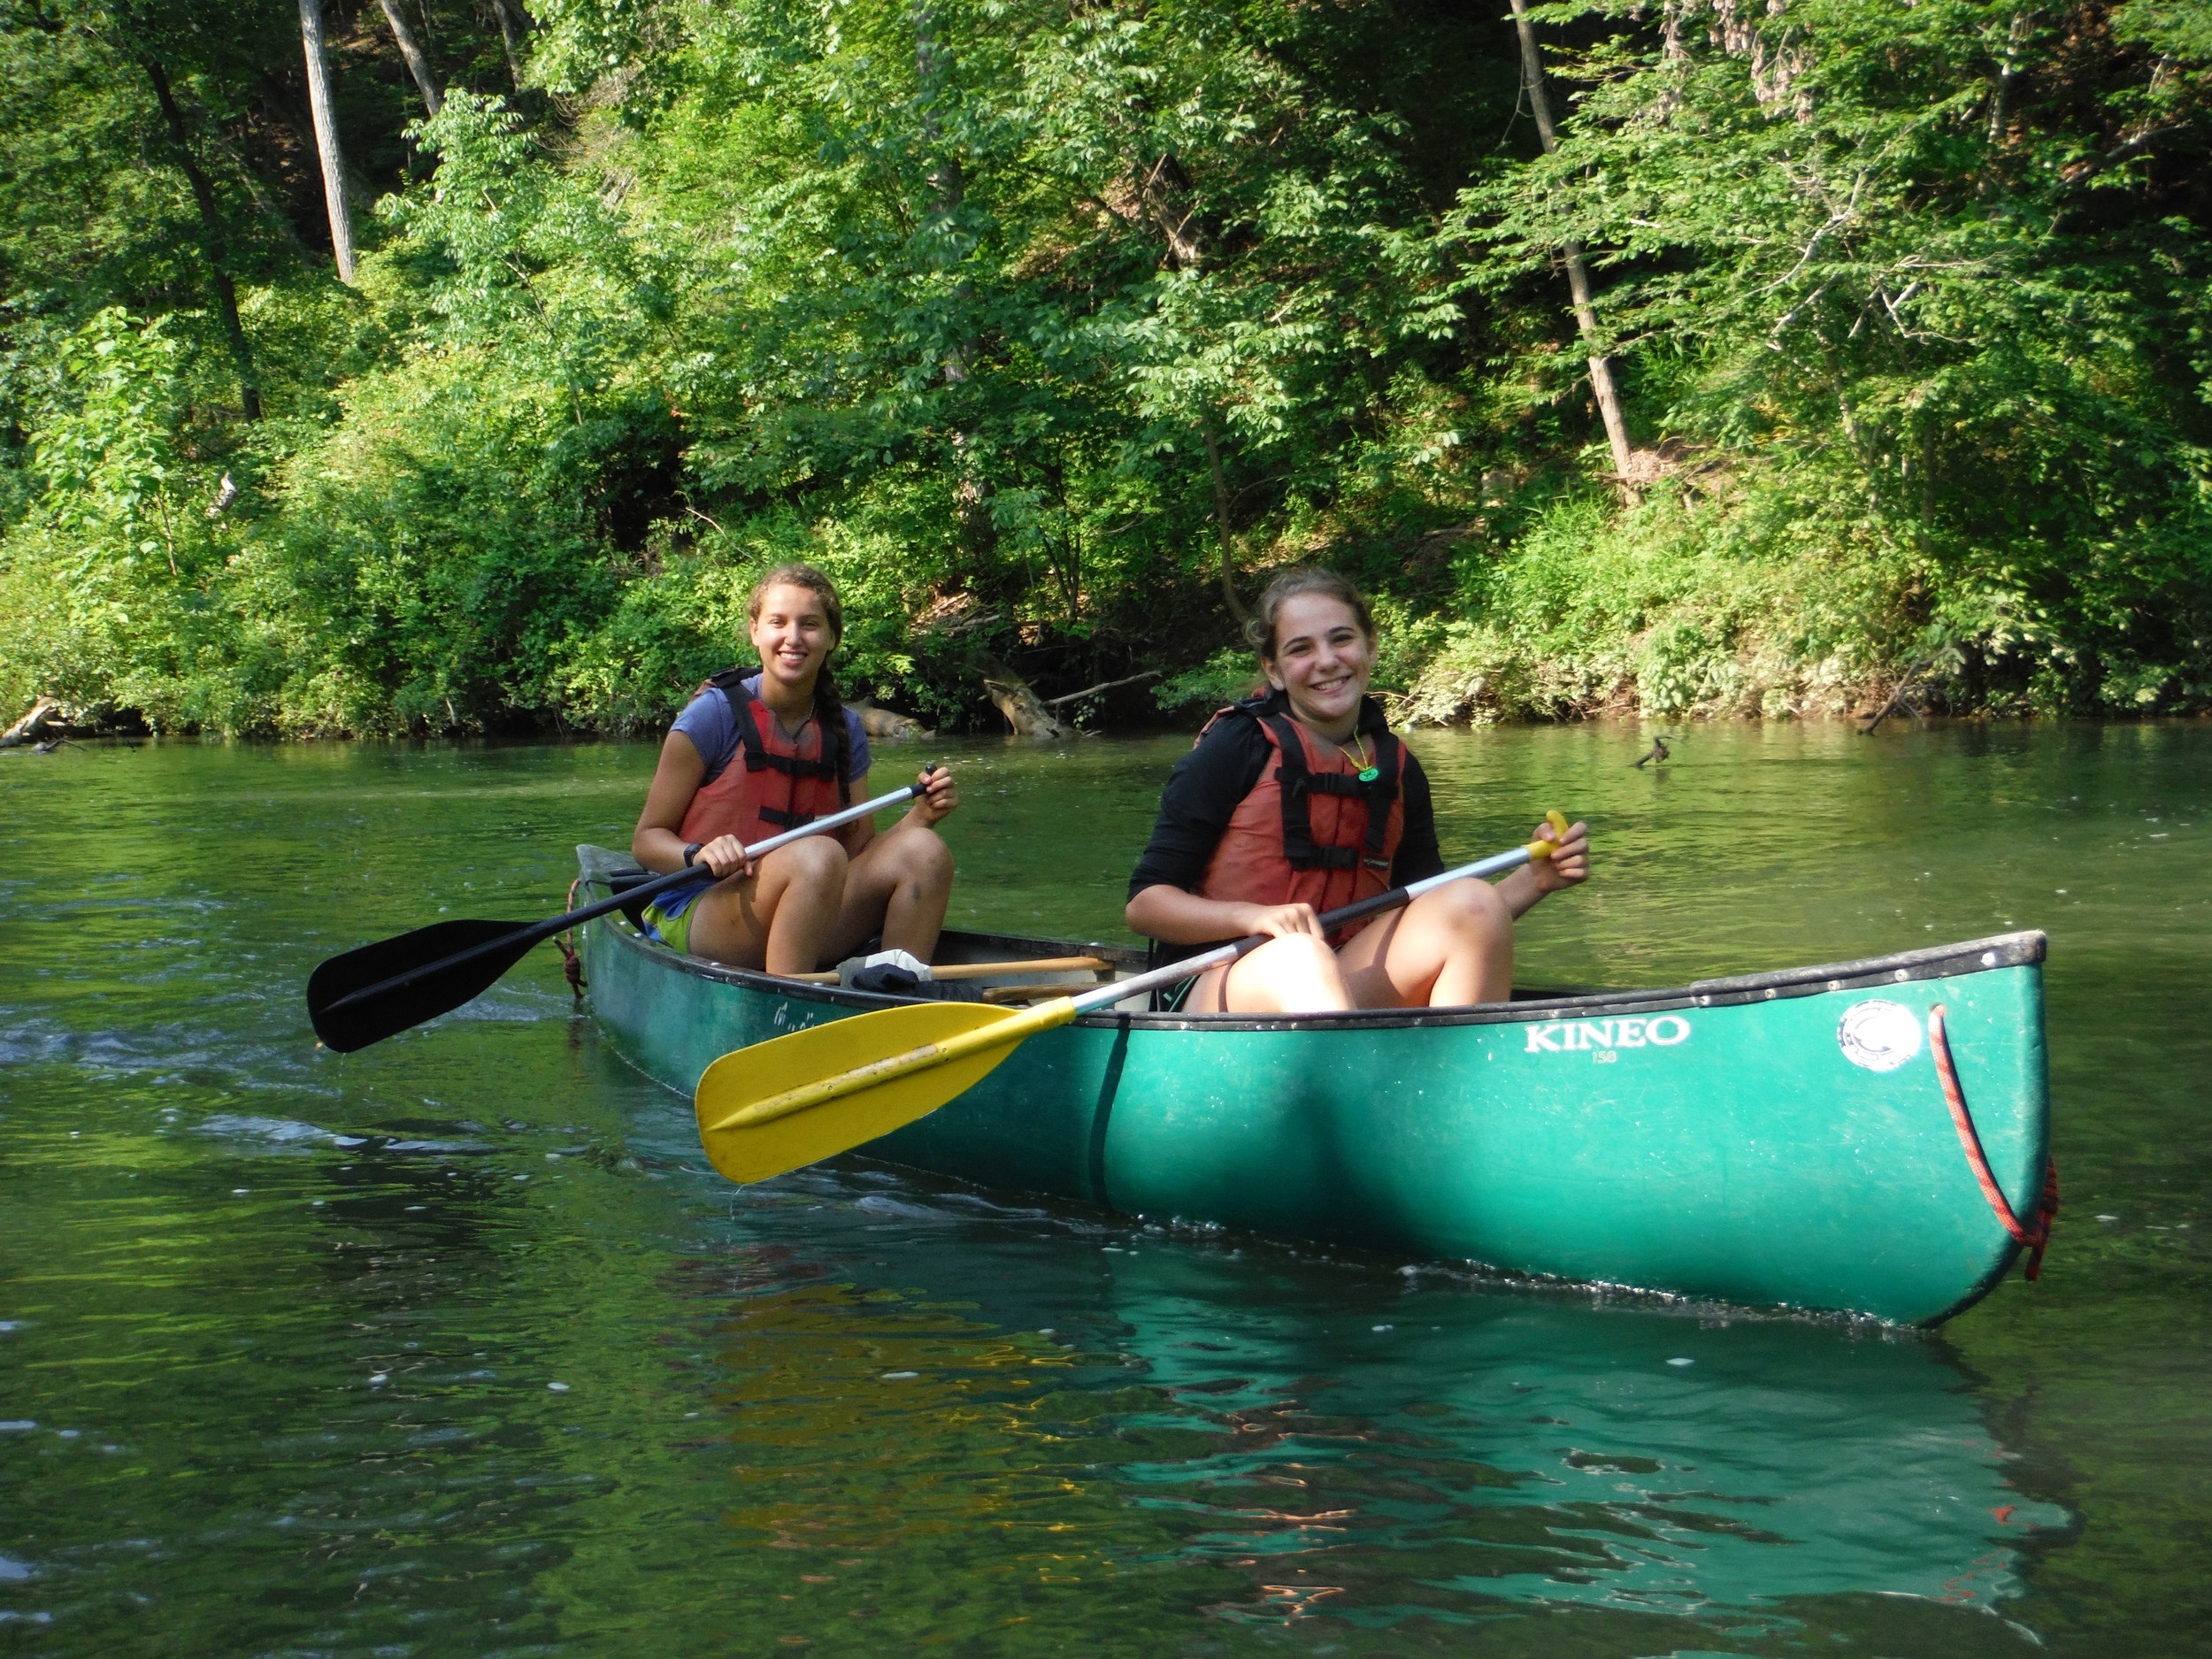 Canoe Rental  $35per boat  Includes shuttle to our 2nd Ford on Craig's Creek!